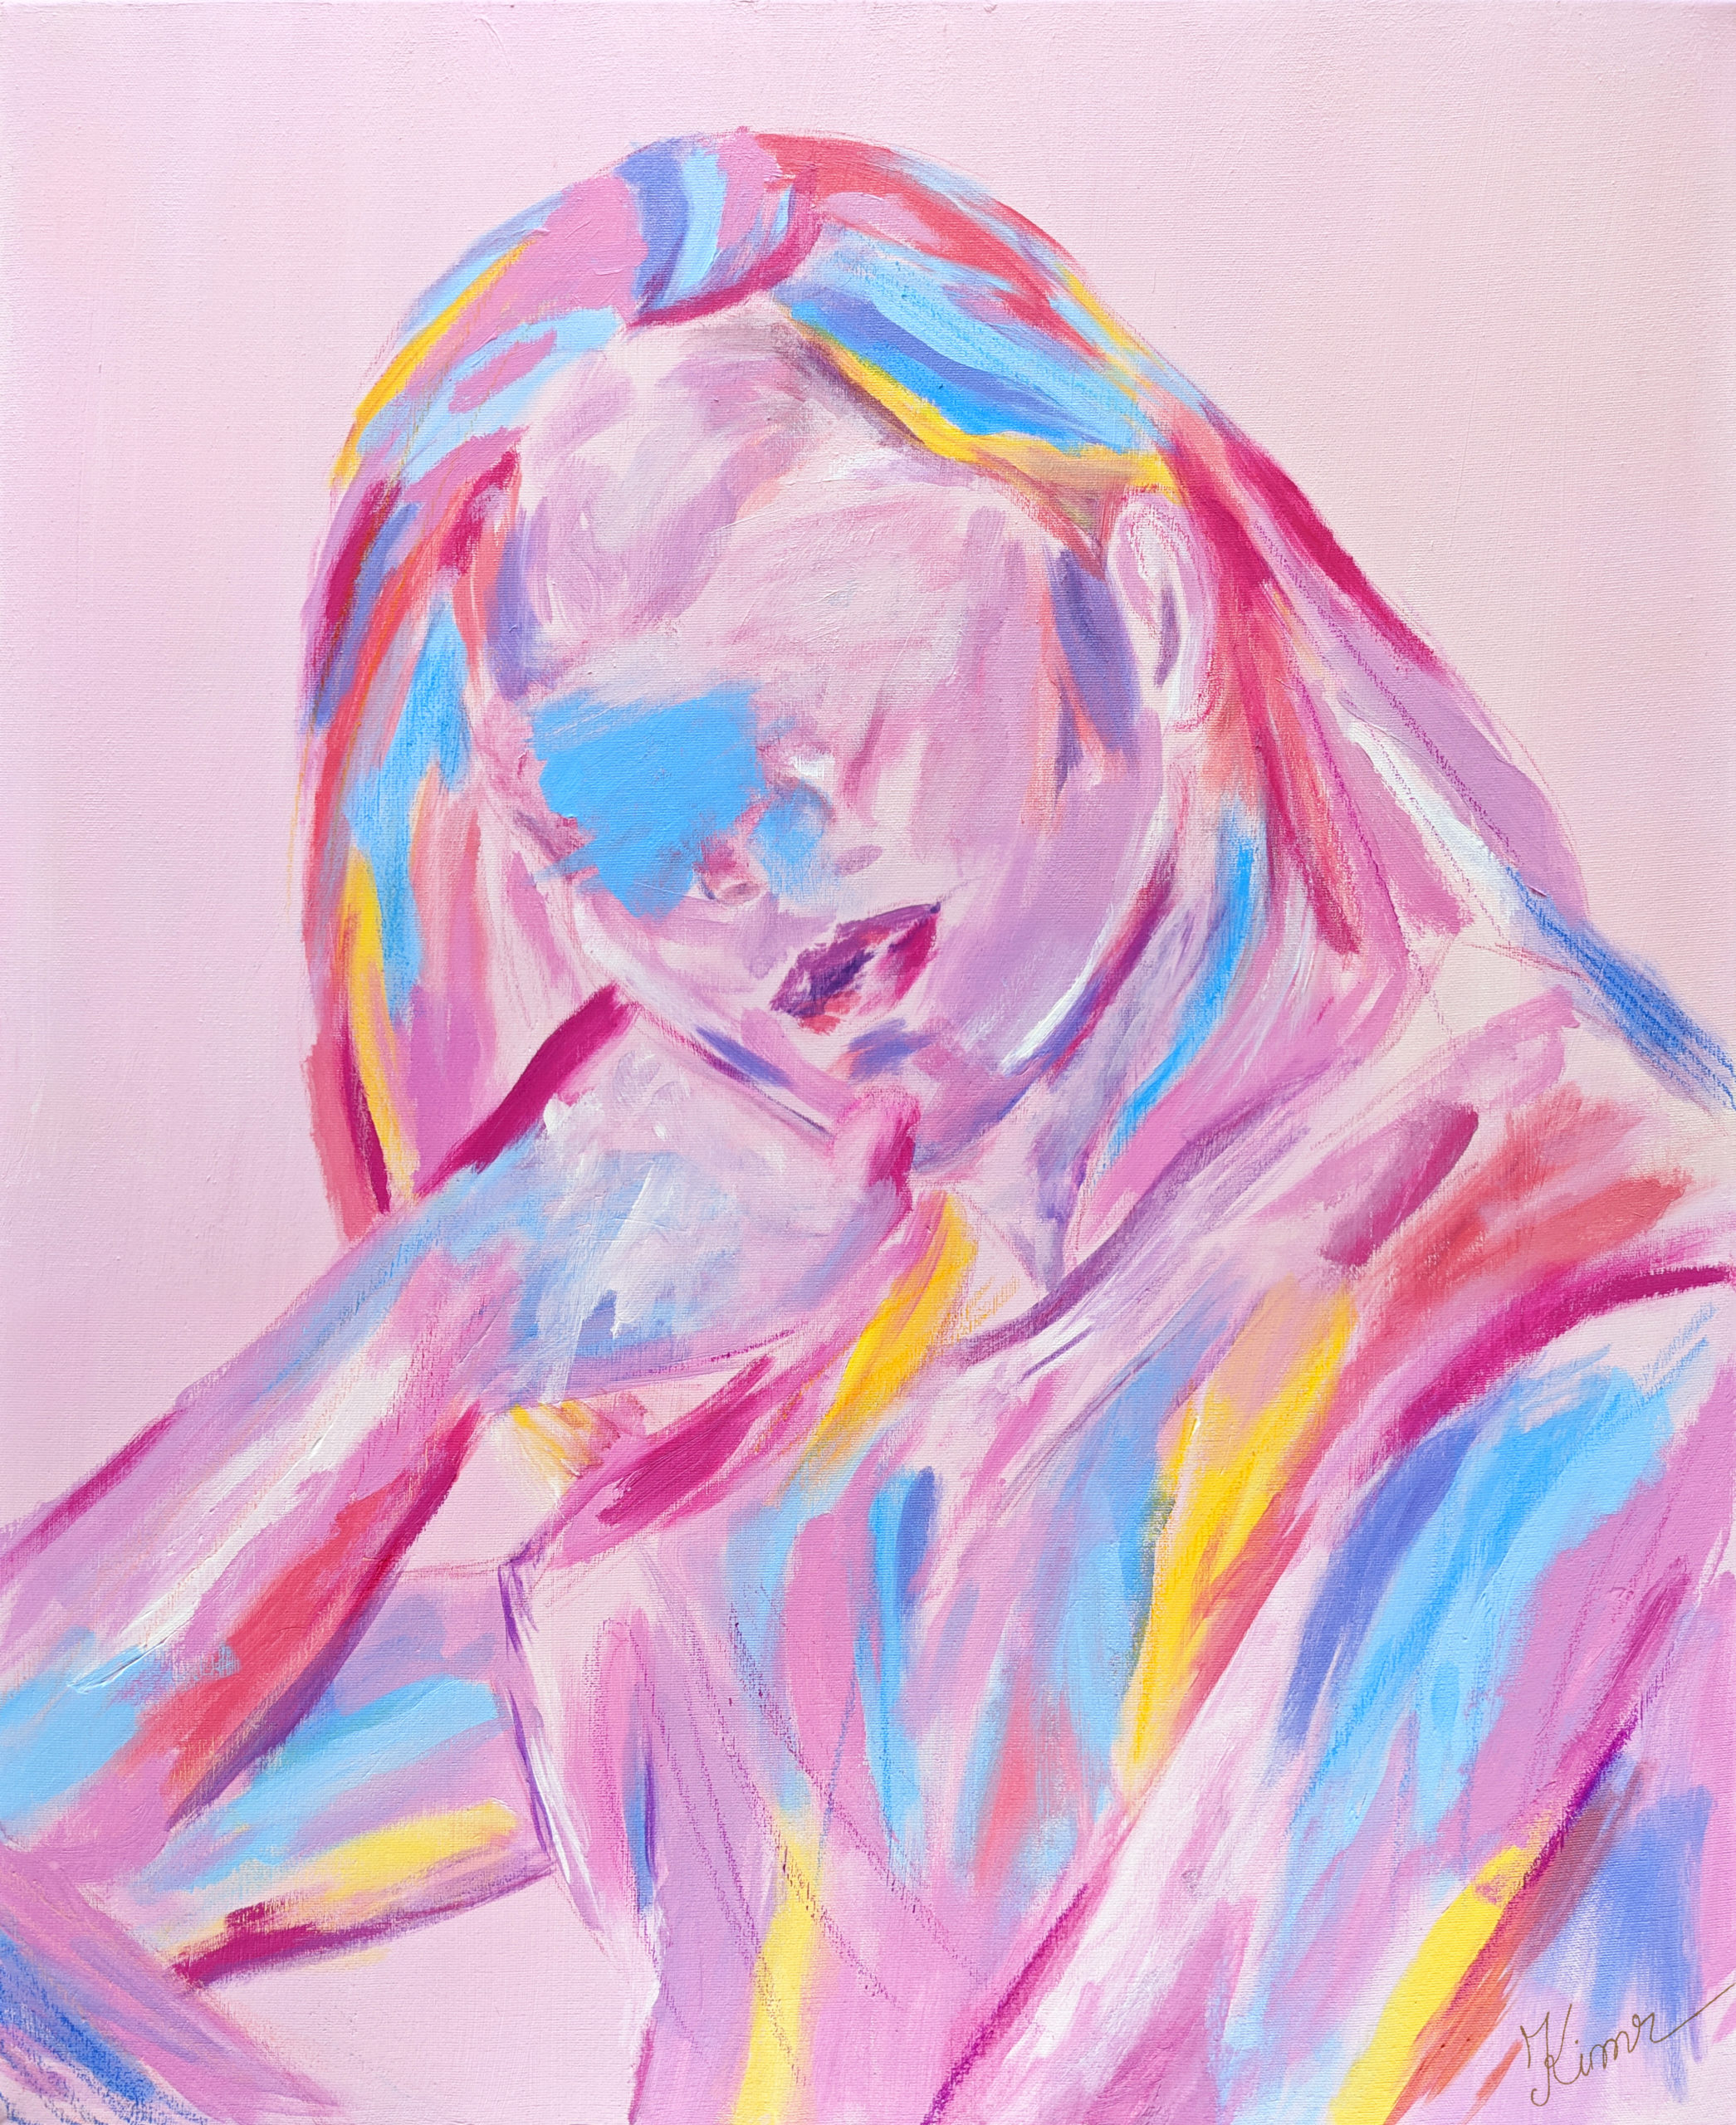 Portrait of girl/woman in pastels, with streaks of blue, yellow, red, and orange on pink background